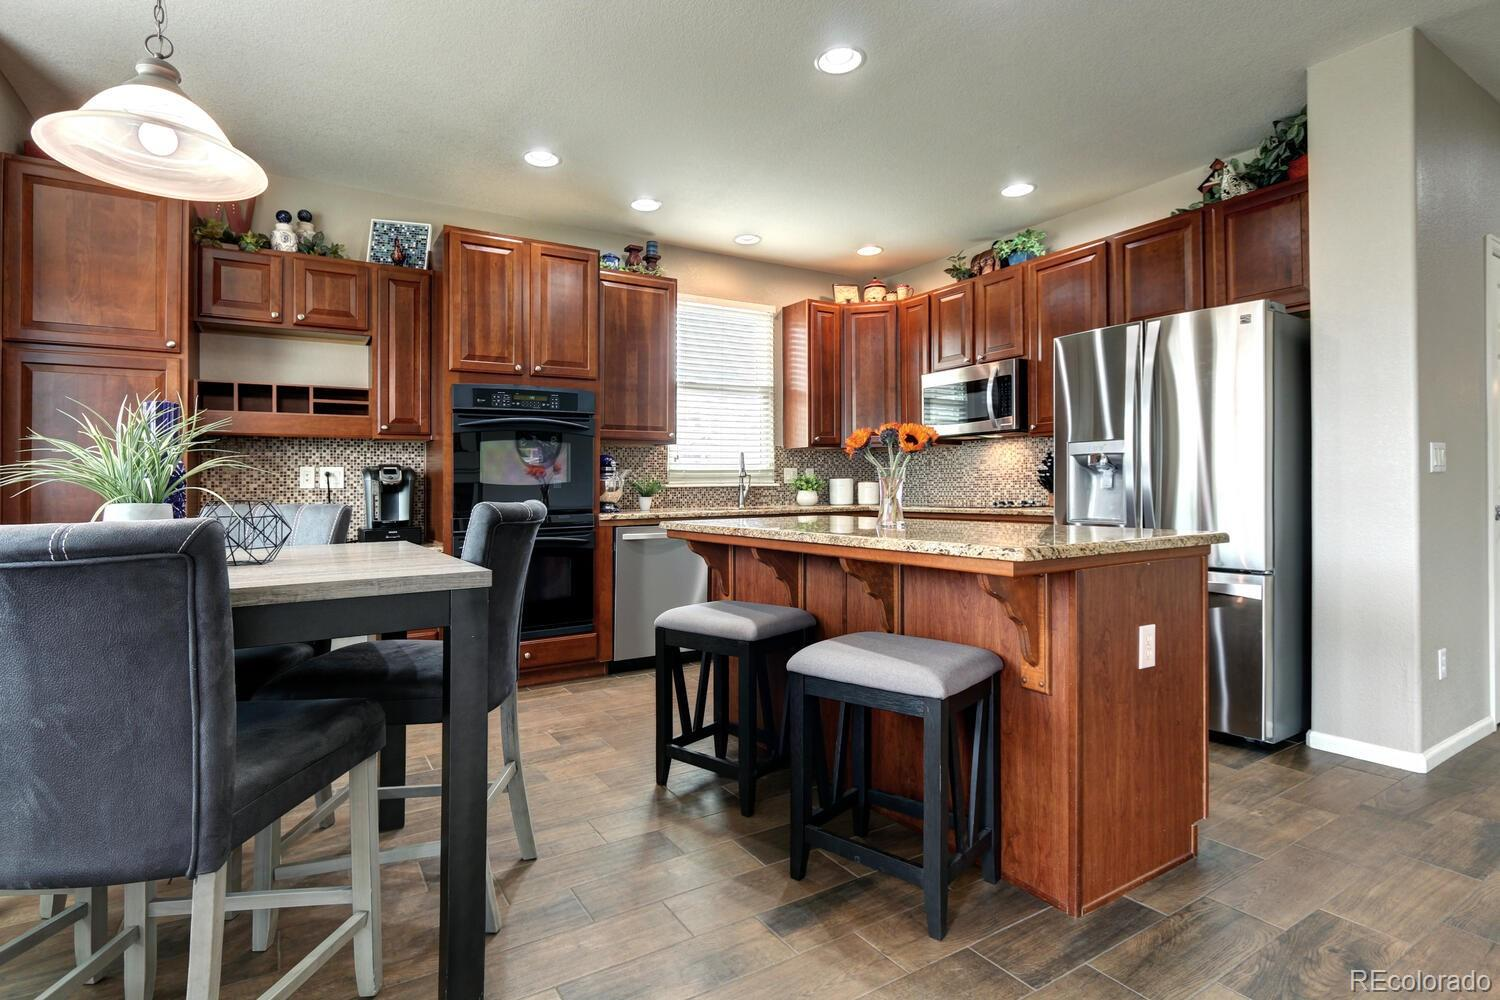 Need a home for a big family? Take a look at this gorgeous house with 5 bedrooms!